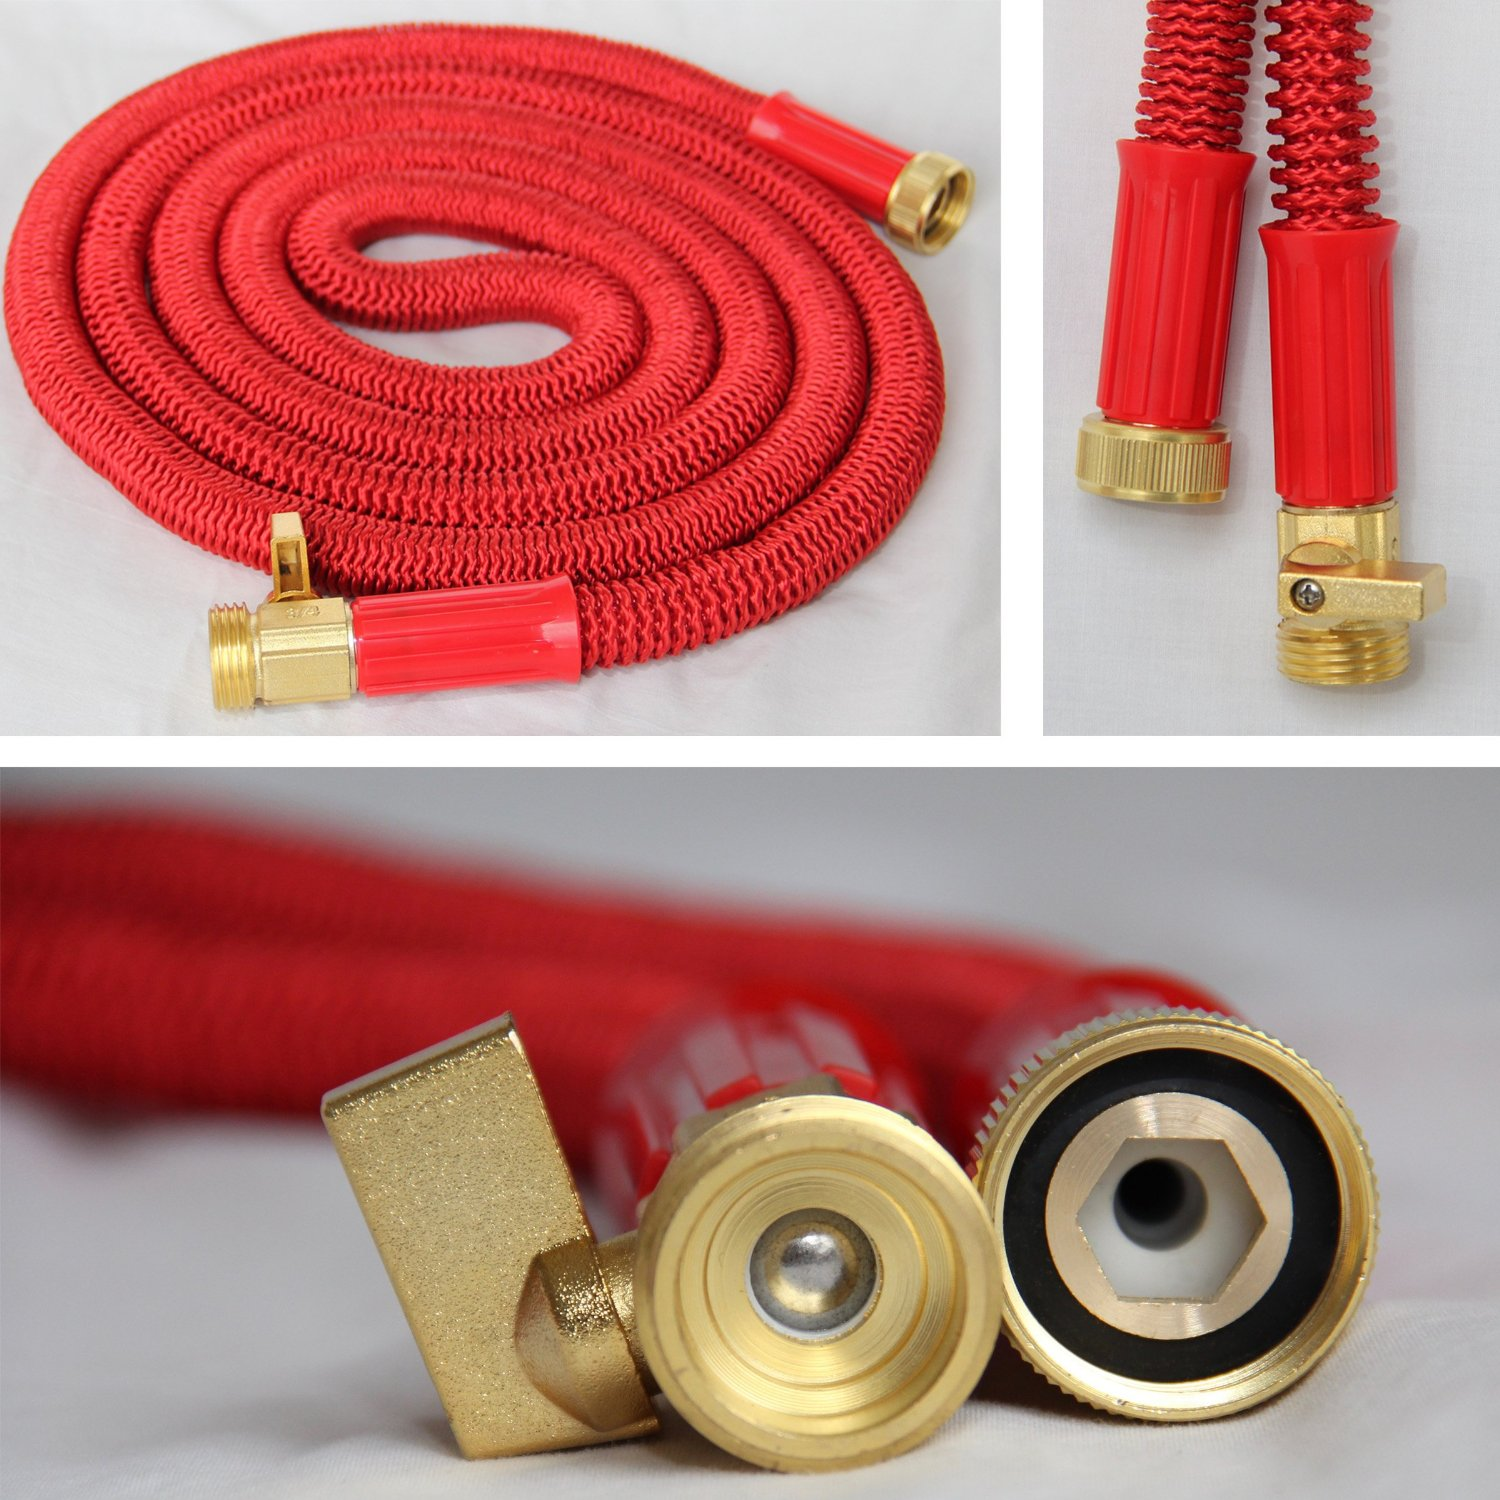 Durable Updated Expandable Garden Hose Brass Fitting HT1079